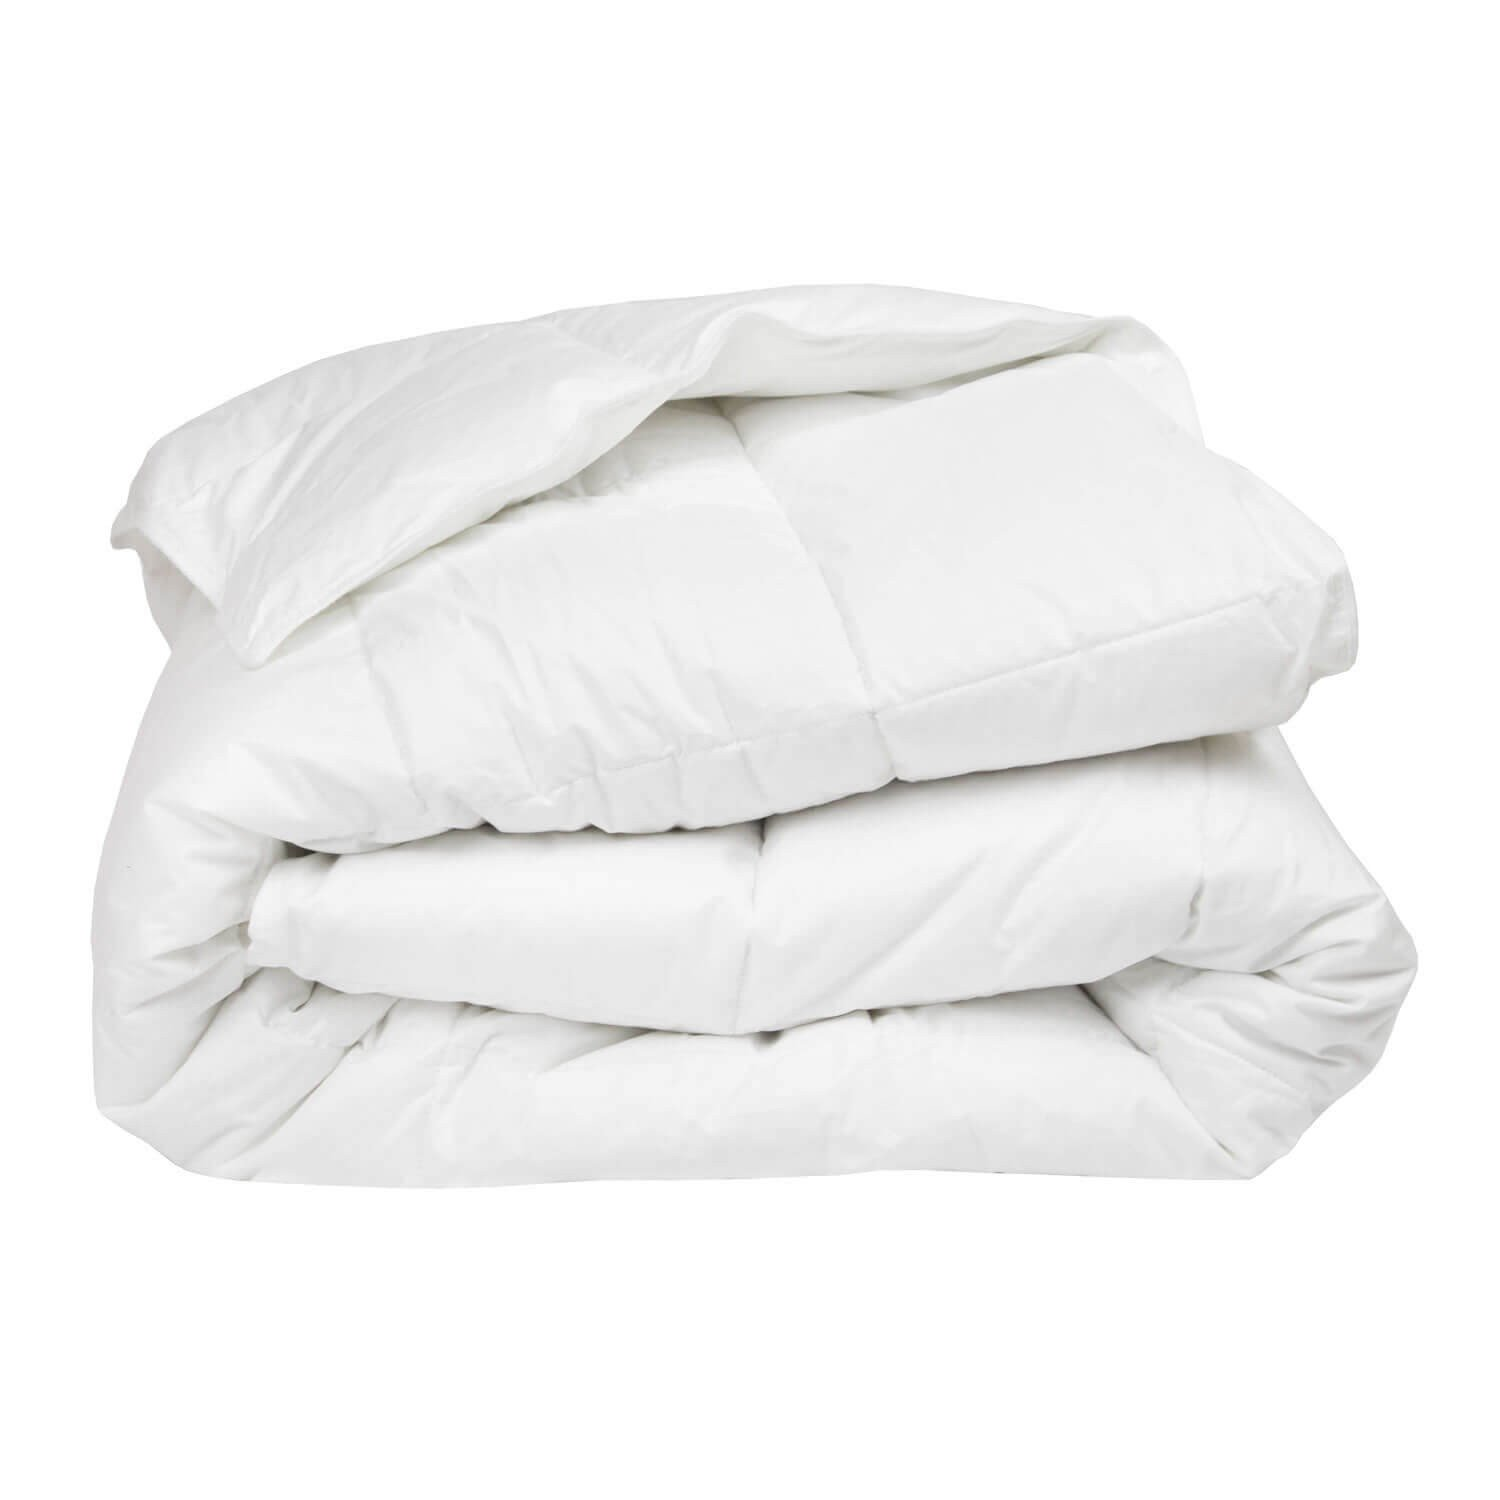 Medium weight Fibre Duvet